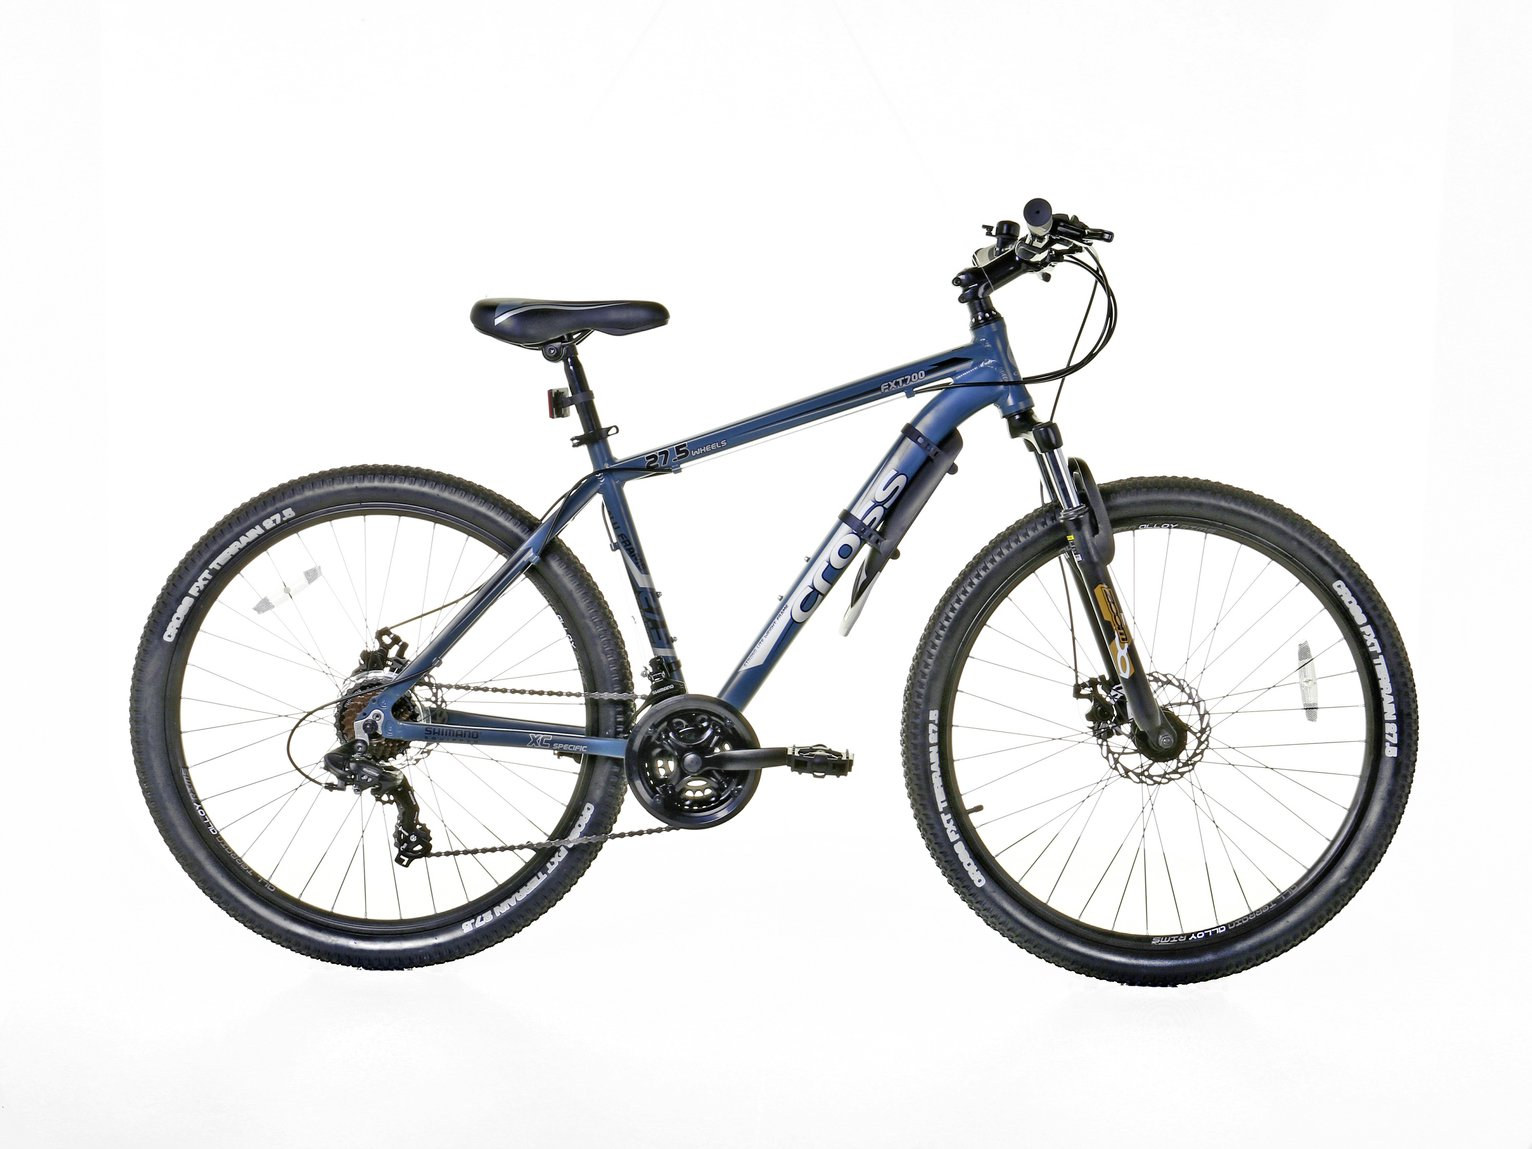 Image of Cross FXT700 Front Suspension 27.5 Inch Mountain Bike